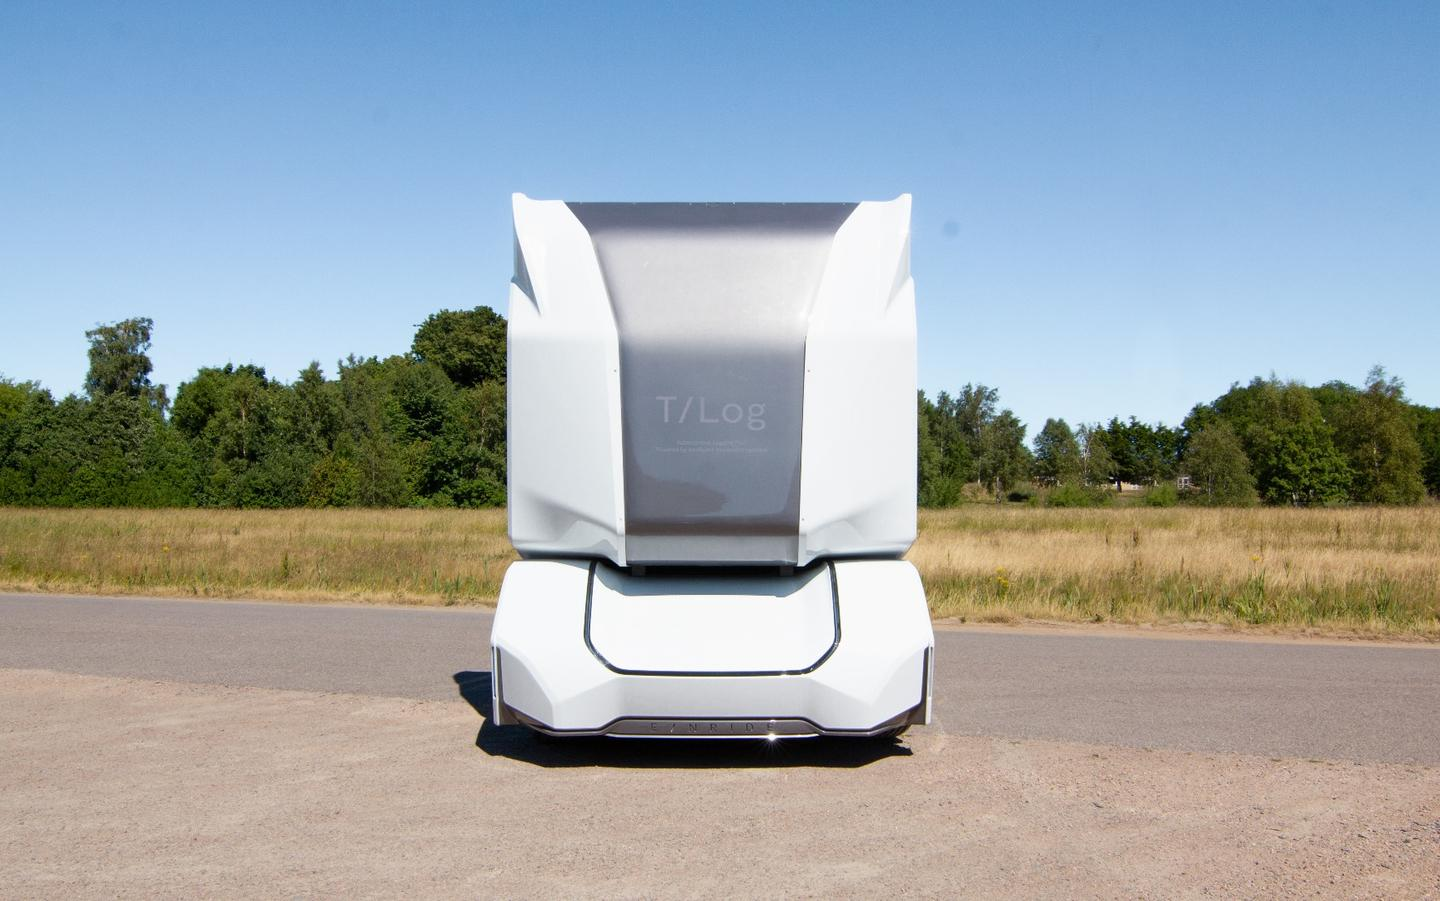 Being self-driven, the Einride T-log truck has no driver's cab for a human to enter and sit in